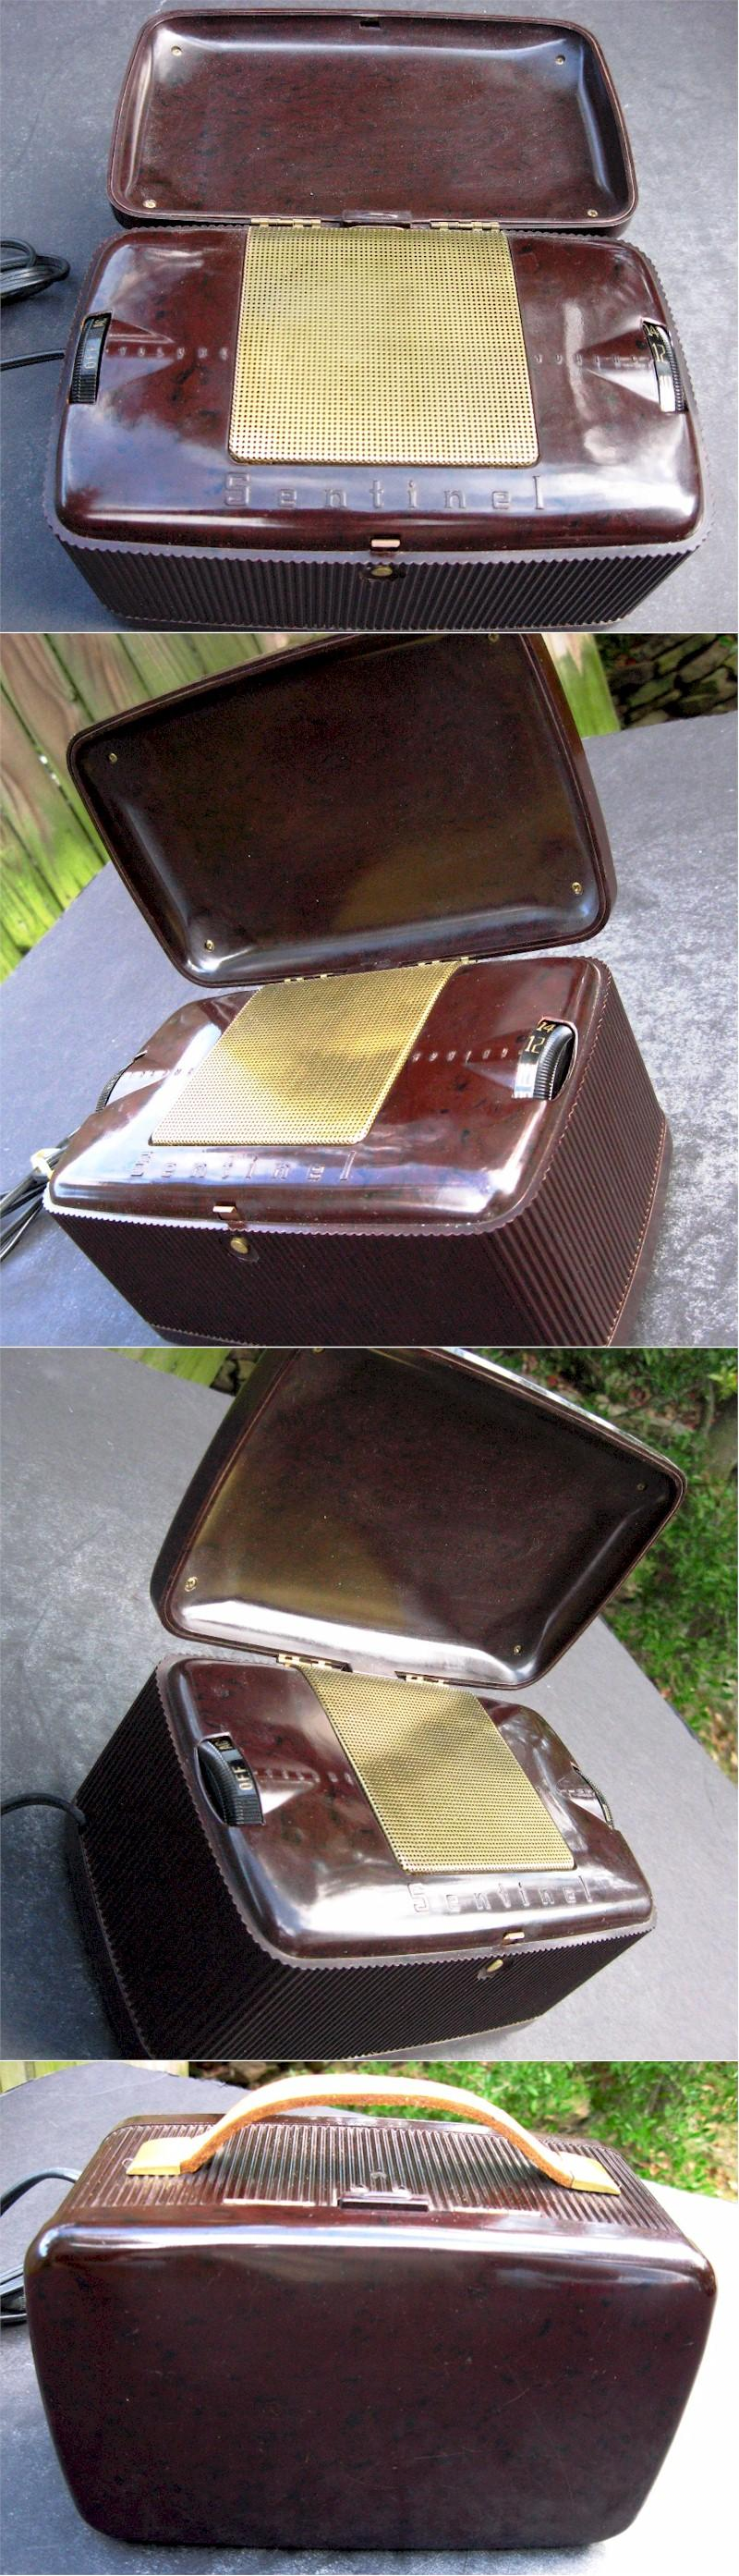 "Sentinel 286P ""Treasure Chest"" Portable (1947)"